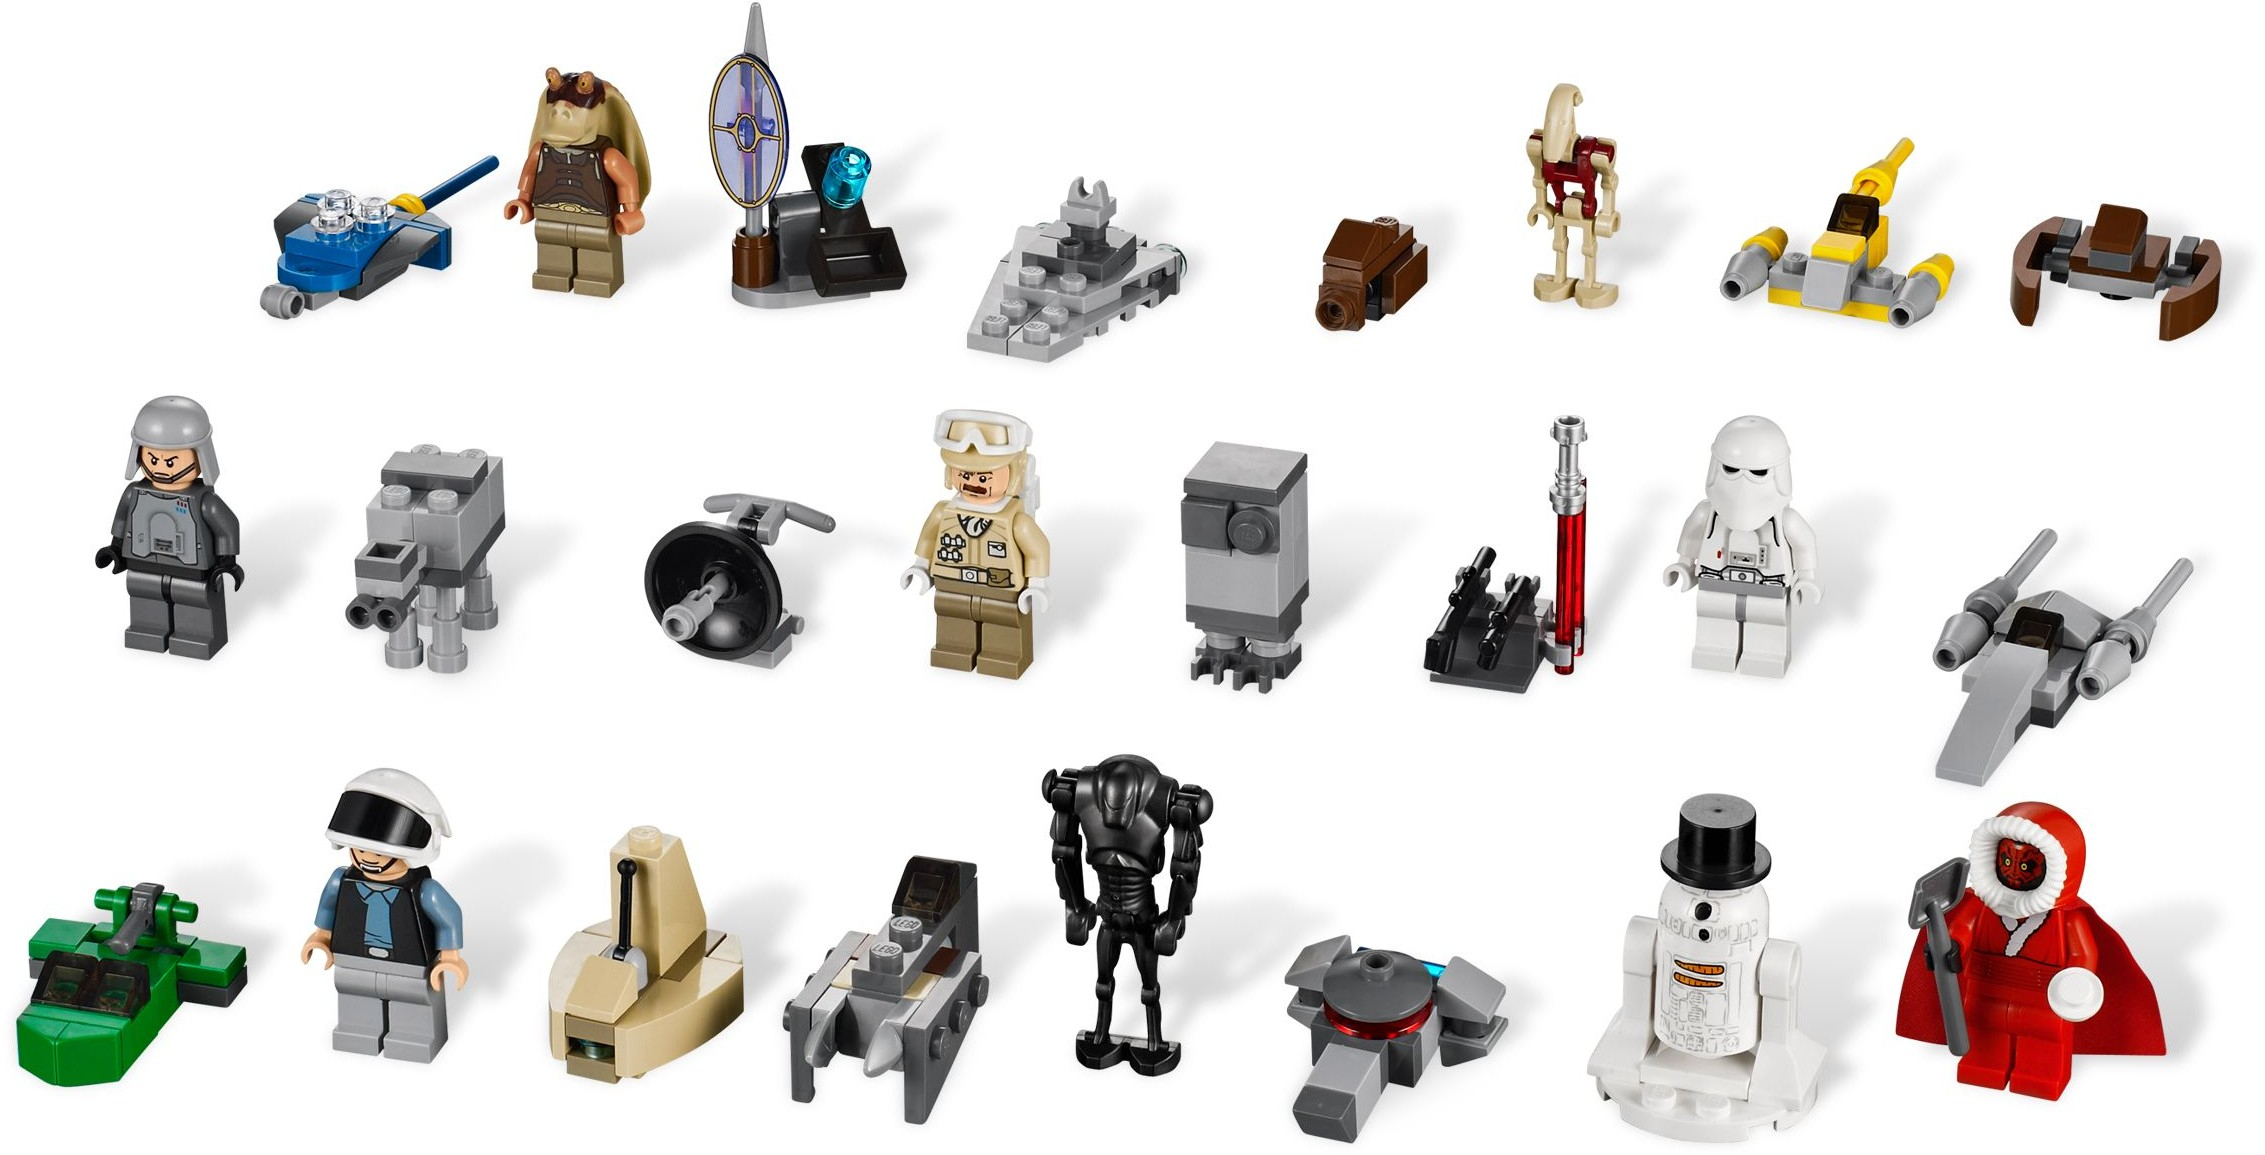 Лего 9509 Star Wars Advent Calendar intended for Star Wars Advent Calendar 2013